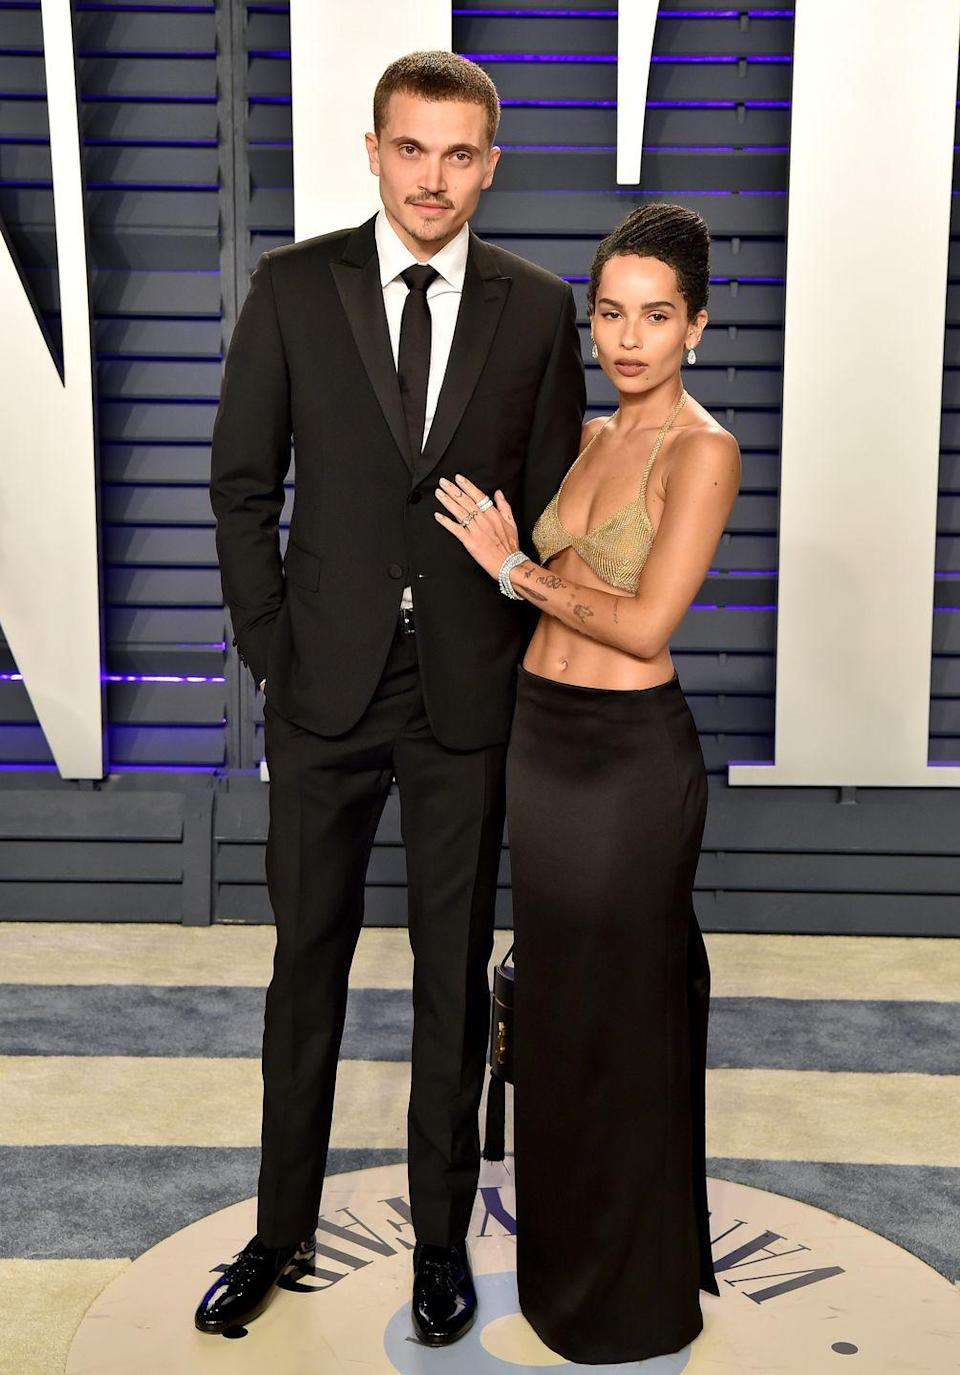 """<p><strong>How long they've been together:</strong> Kravitz and Glusman were introduced in 2016 by mutual friends. She was smitten from the start and the two have shared sweet love notes on <a href=""""https://www.instagram.com/p/BVDdv96g9ni/?utm_source=ig_embed"""" rel=""""nofollow noopener"""" target=""""_blank"""" data-ylk=""""slk:Instagram"""" class=""""link rapid-noclick-resp"""">Instagram</a> that melt our hearts. </p><p><strong>Why you forgot they're together:</strong> The pair is insanely low-key. We barely knew about they were thinking of tying the knot before they surprised everyone with a wedding <a href=""""https://www.marieclaire.com/celebrity/a24427486/who-is-karl-glusman-zoe-kravtiz-engaged/"""" rel=""""nofollow noopener"""" target=""""_blank"""" data-ylk=""""slk:announcement"""" class=""""link rapid-noclick-resp"""">announcement</a> in May of 2019. </p>"""